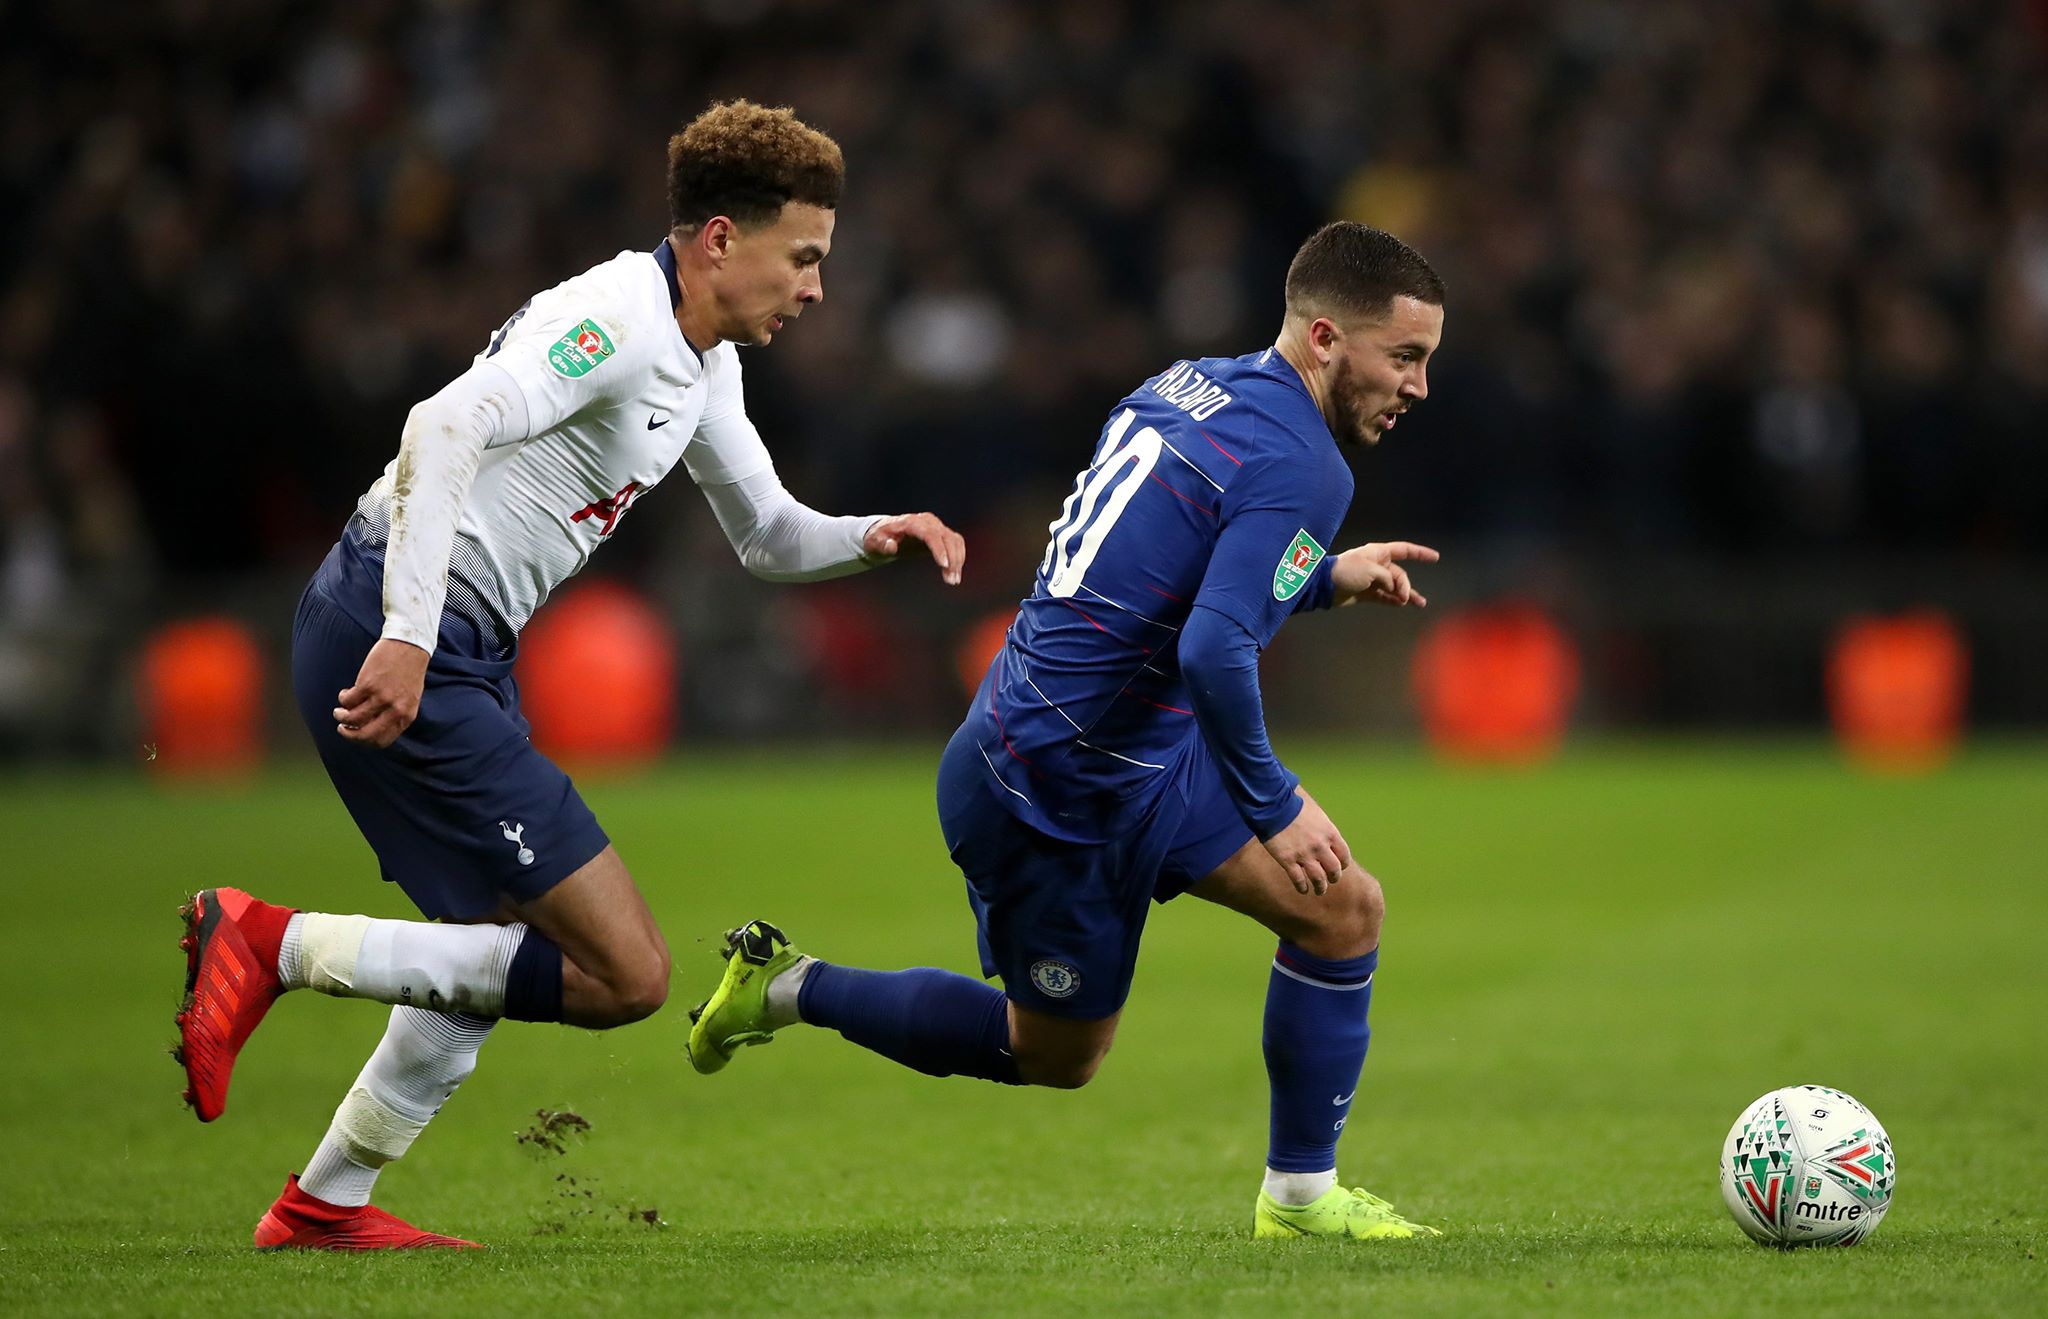 EPL: Hazard too good for Chelsea - Jenas